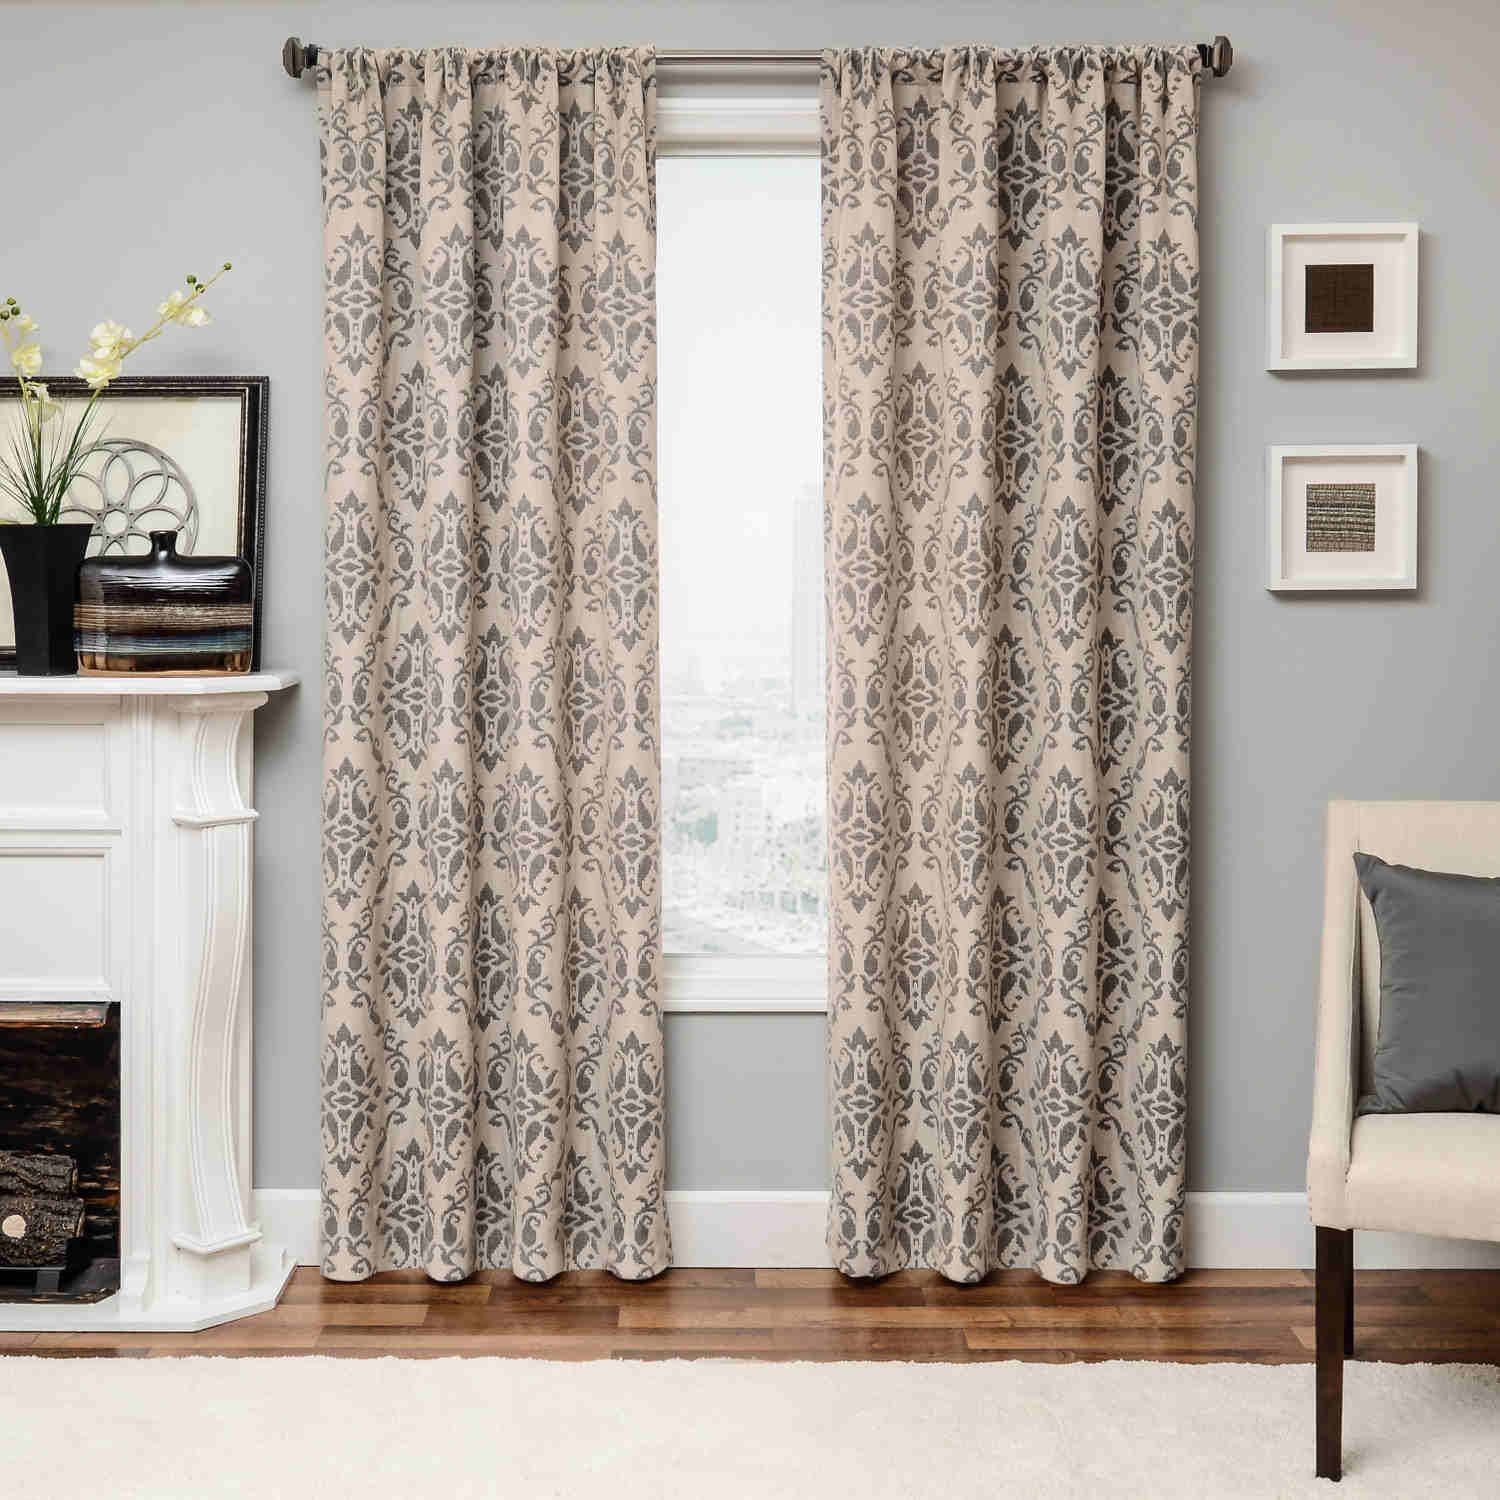 Softline Home Fashions Drapery Athens Damask Panel